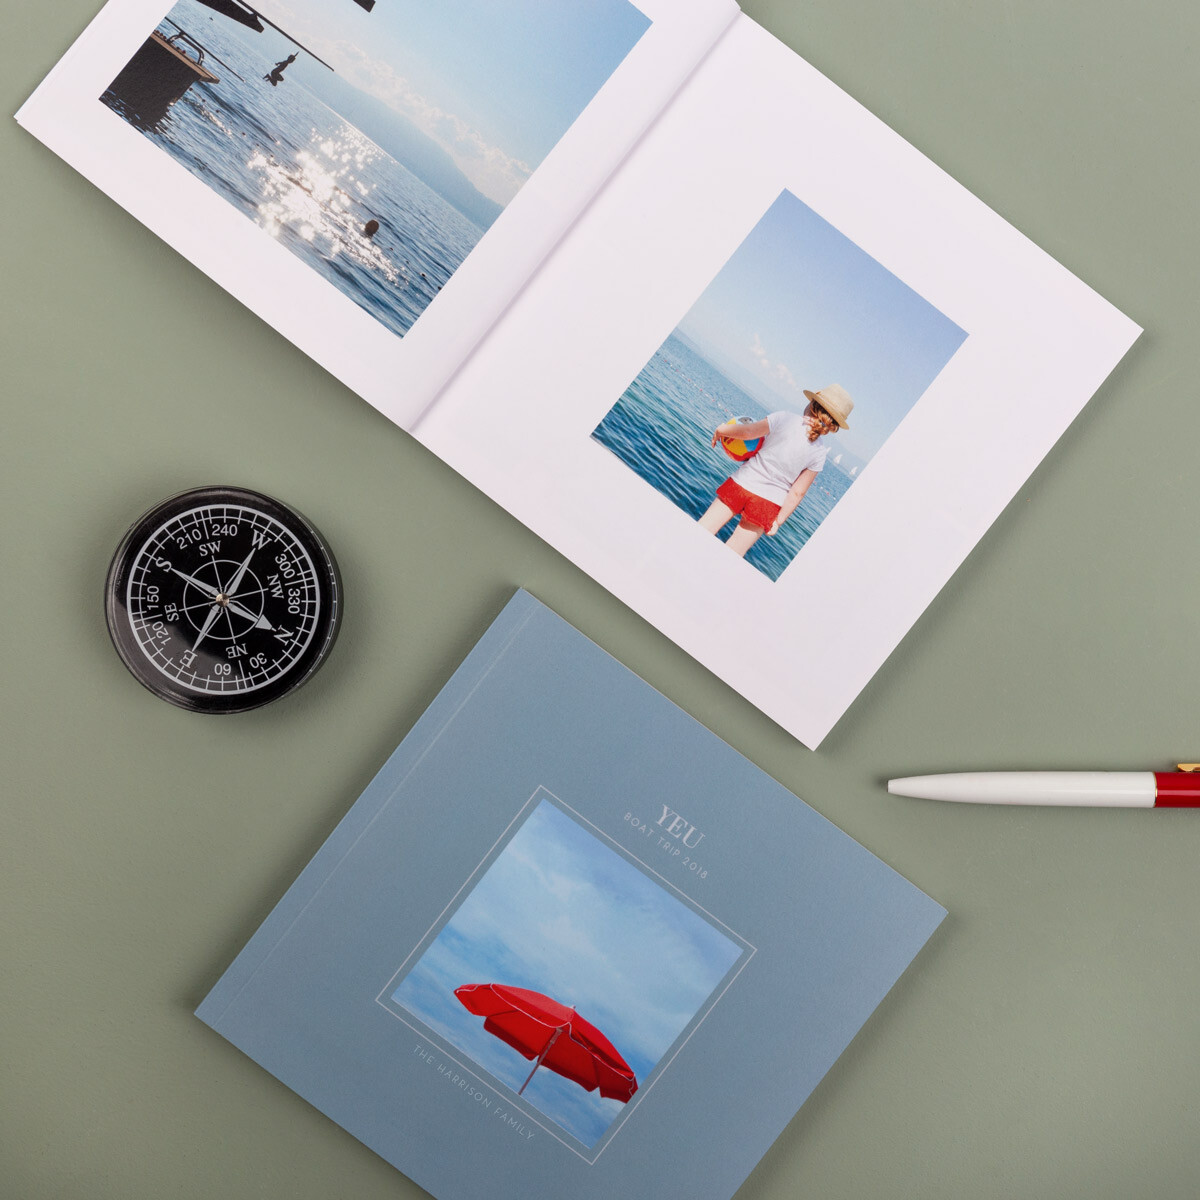 Mini photo books